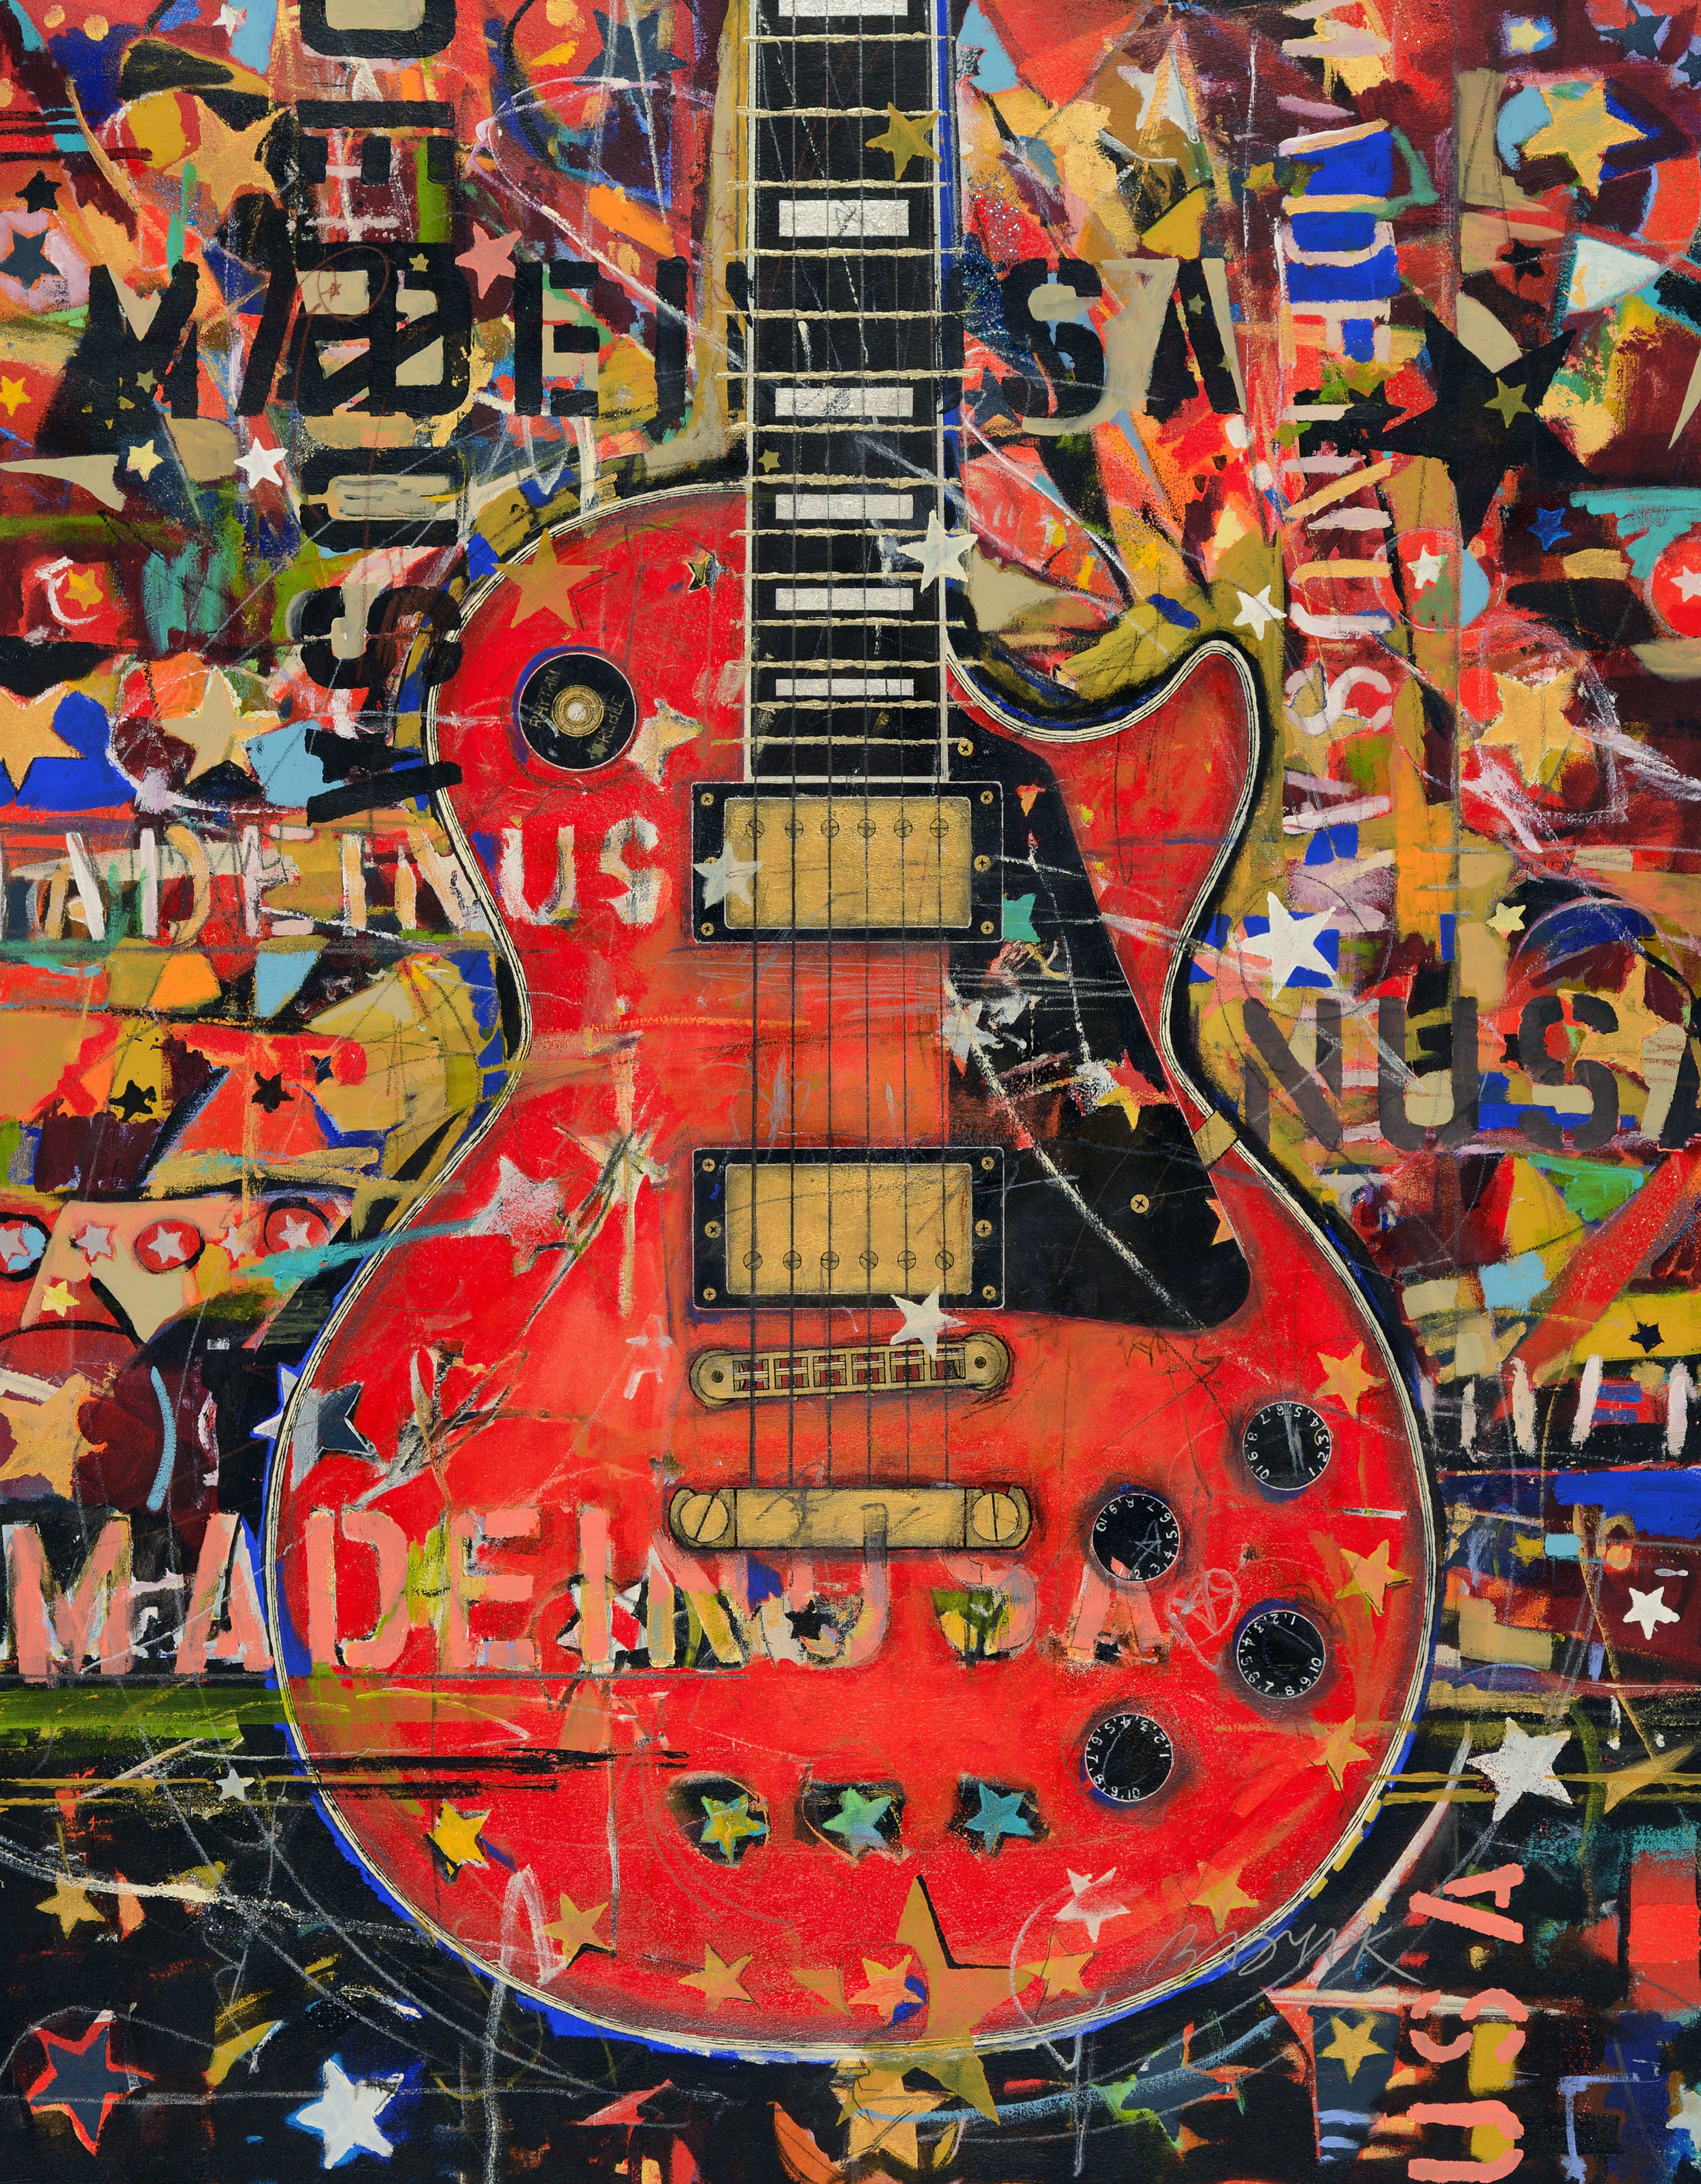 SOLD ///  Red Les Paul  • 54 X 42 • Acrylic, graphite, glitter, 24K gold leaf, silver leaf, polymer netting on canvas